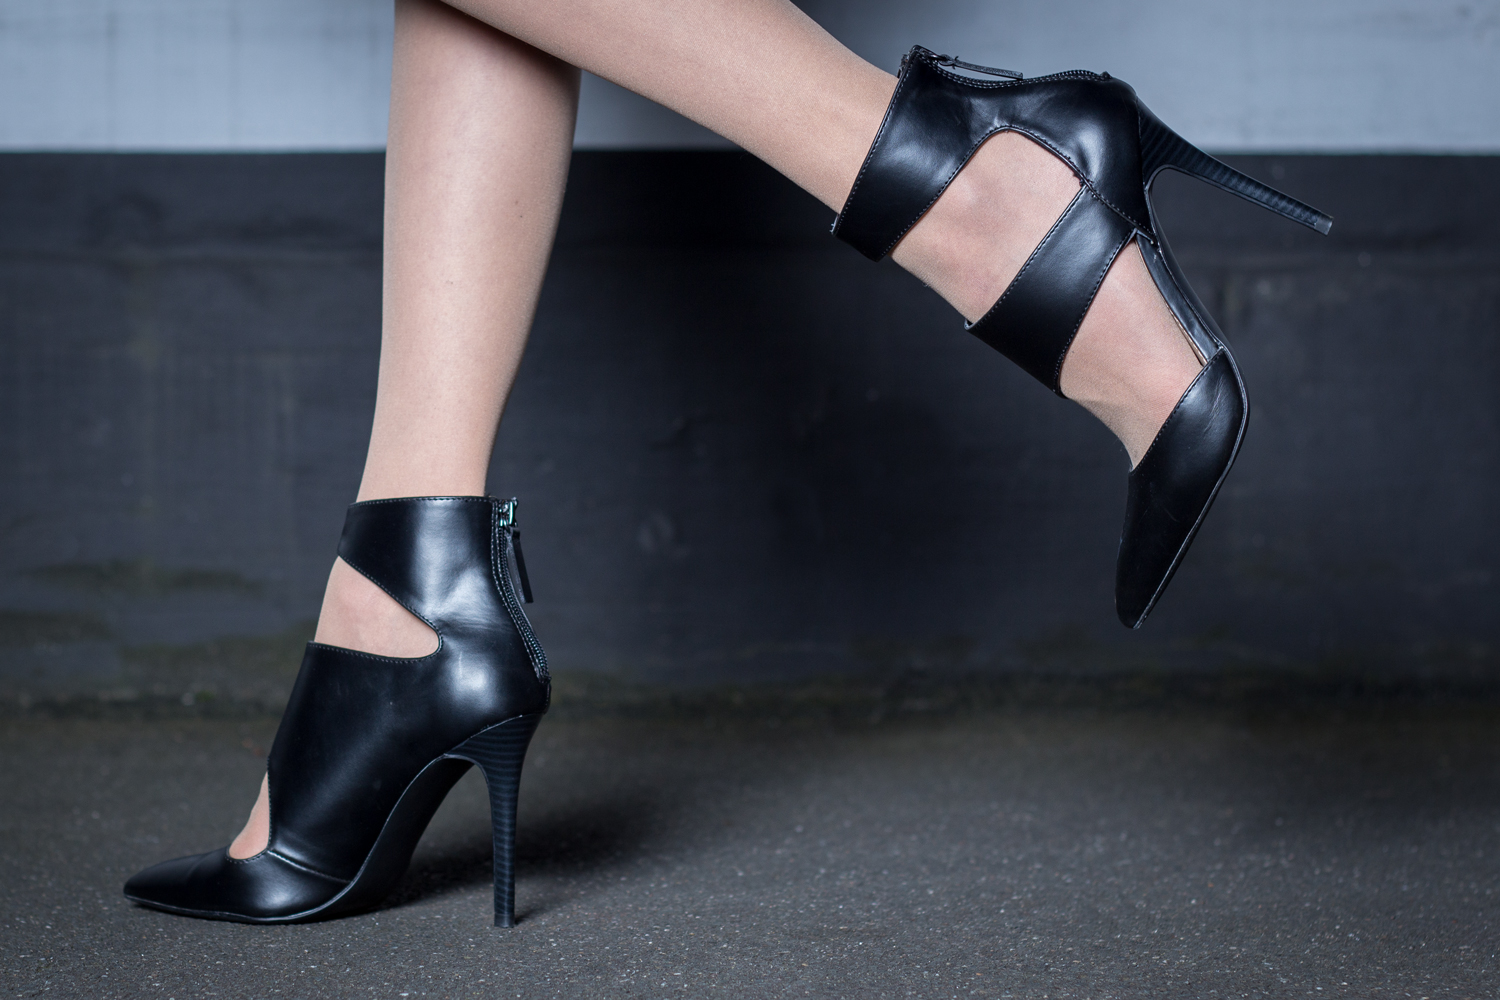 """spitze Ankle Boots mit """"Cut Out""""-Look // black ankle boots with pointed toes and cut-out details"""